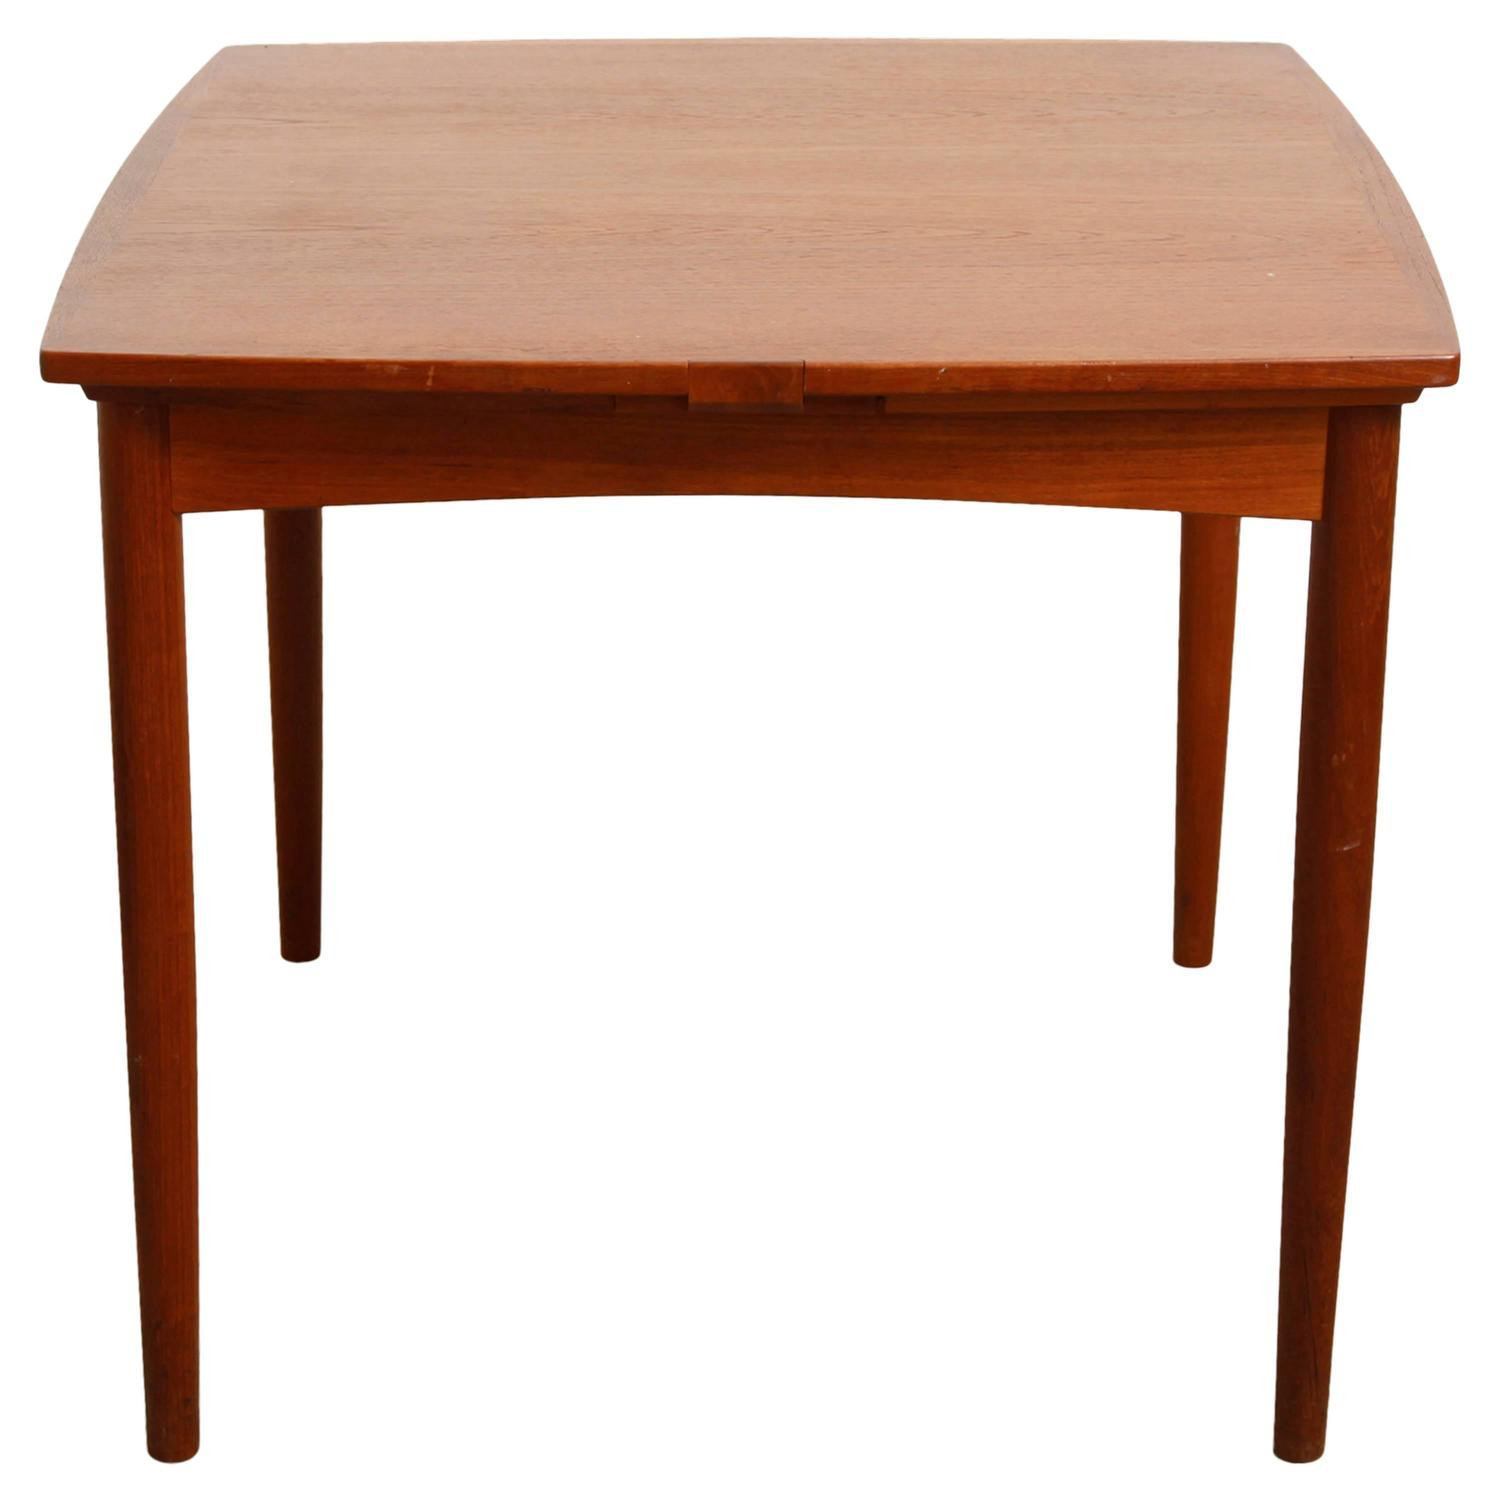 Dinner Table Game  Poul Hundevad Convertible Teak Game or Dining Table at 1stdibs